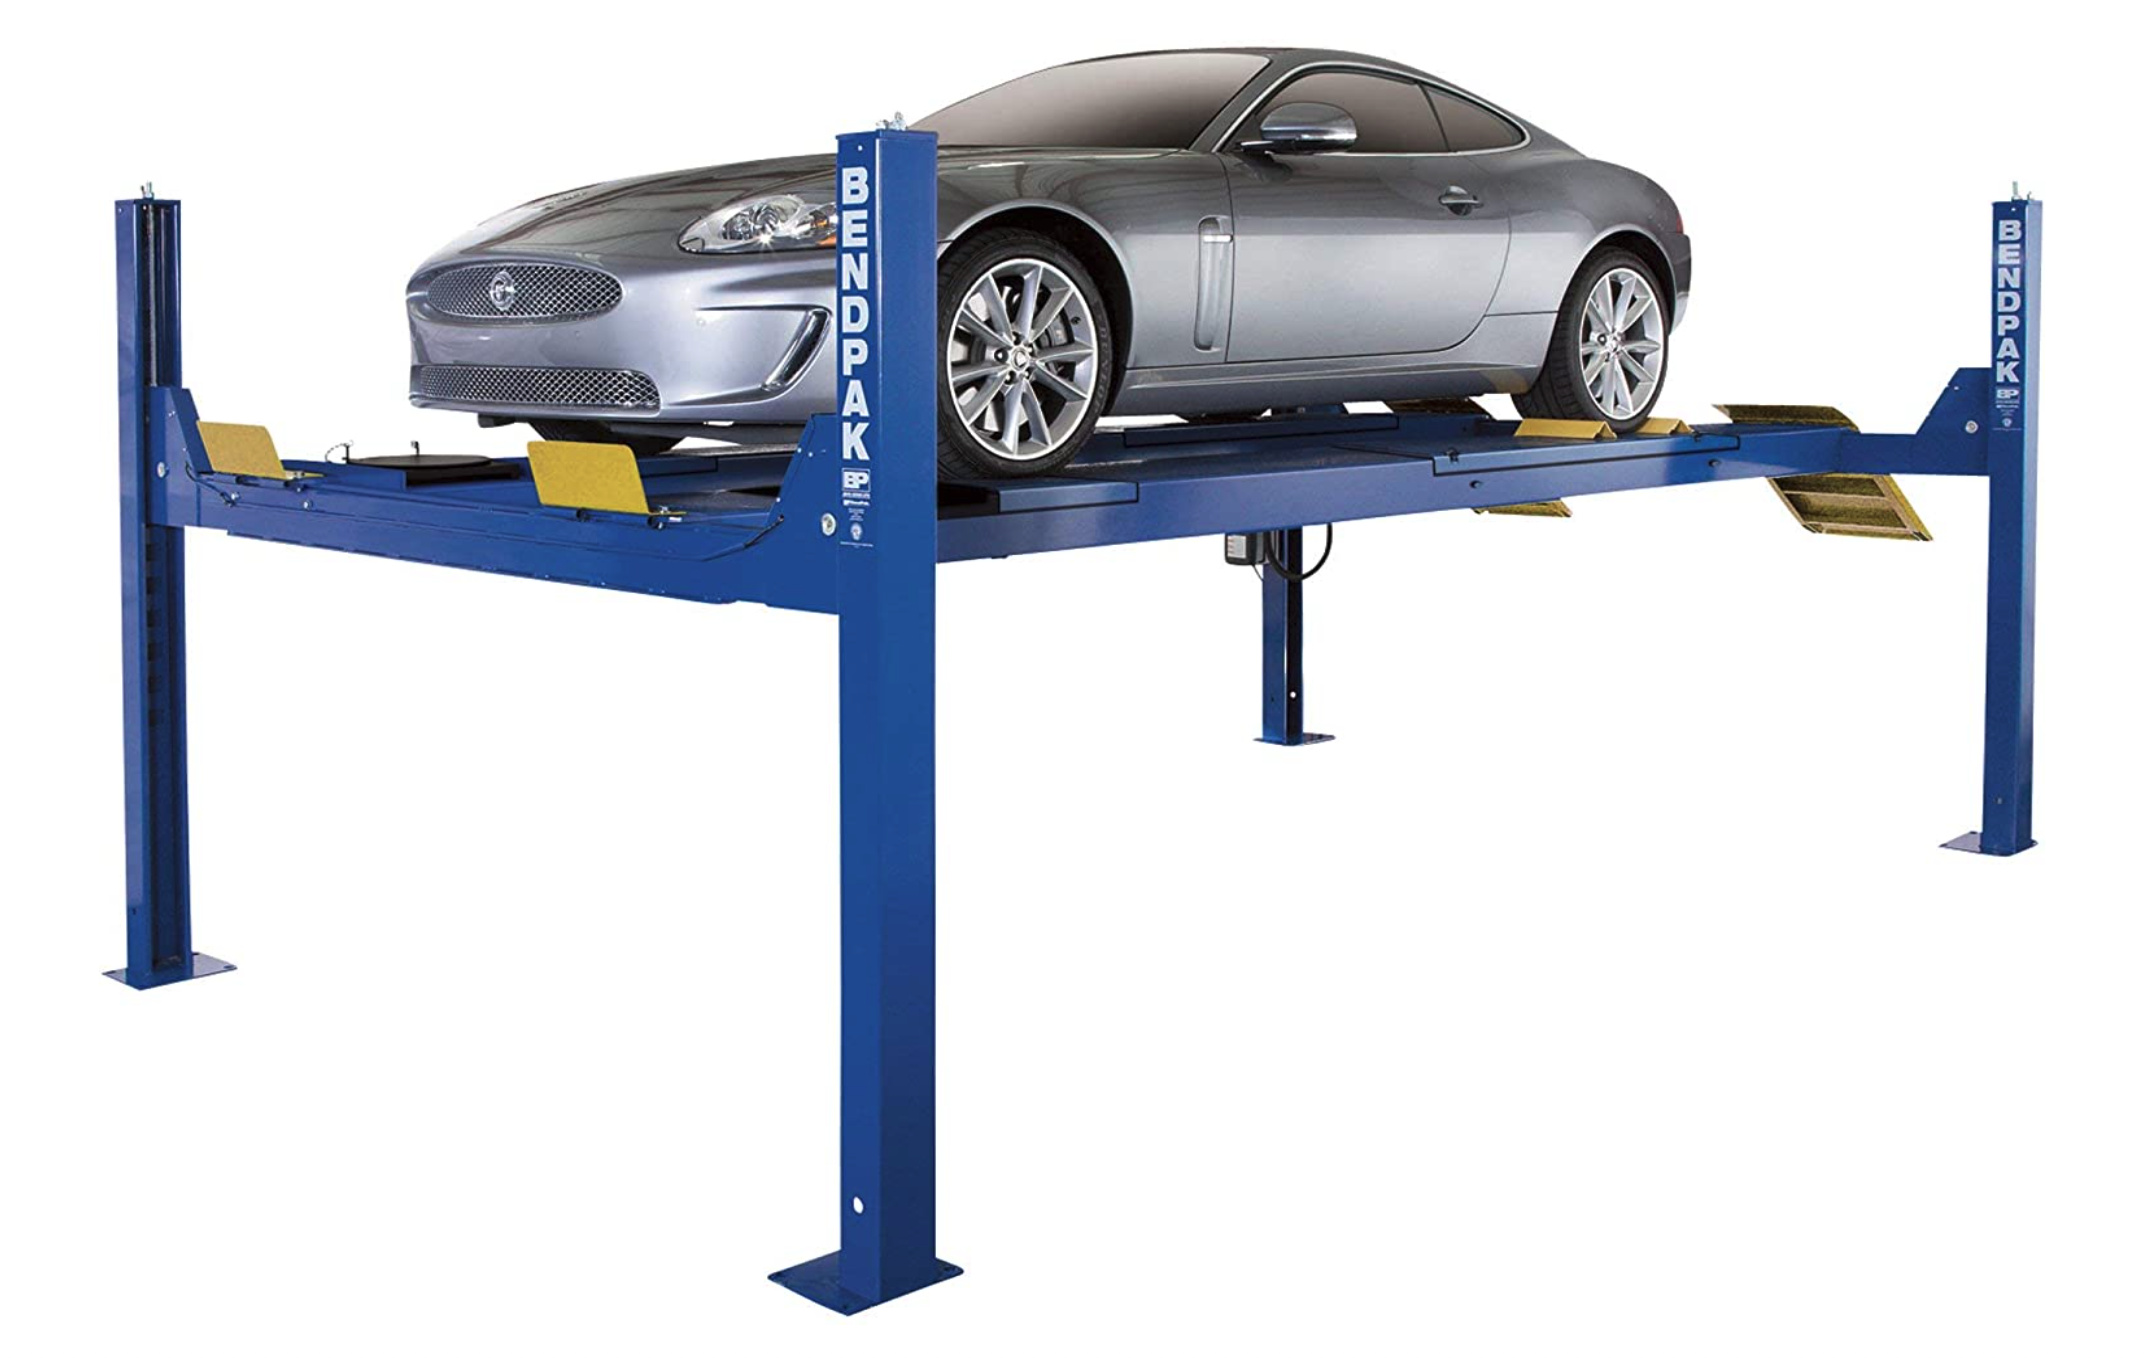 Owner Absentee Auto Lift Supply, Service, and Install Business